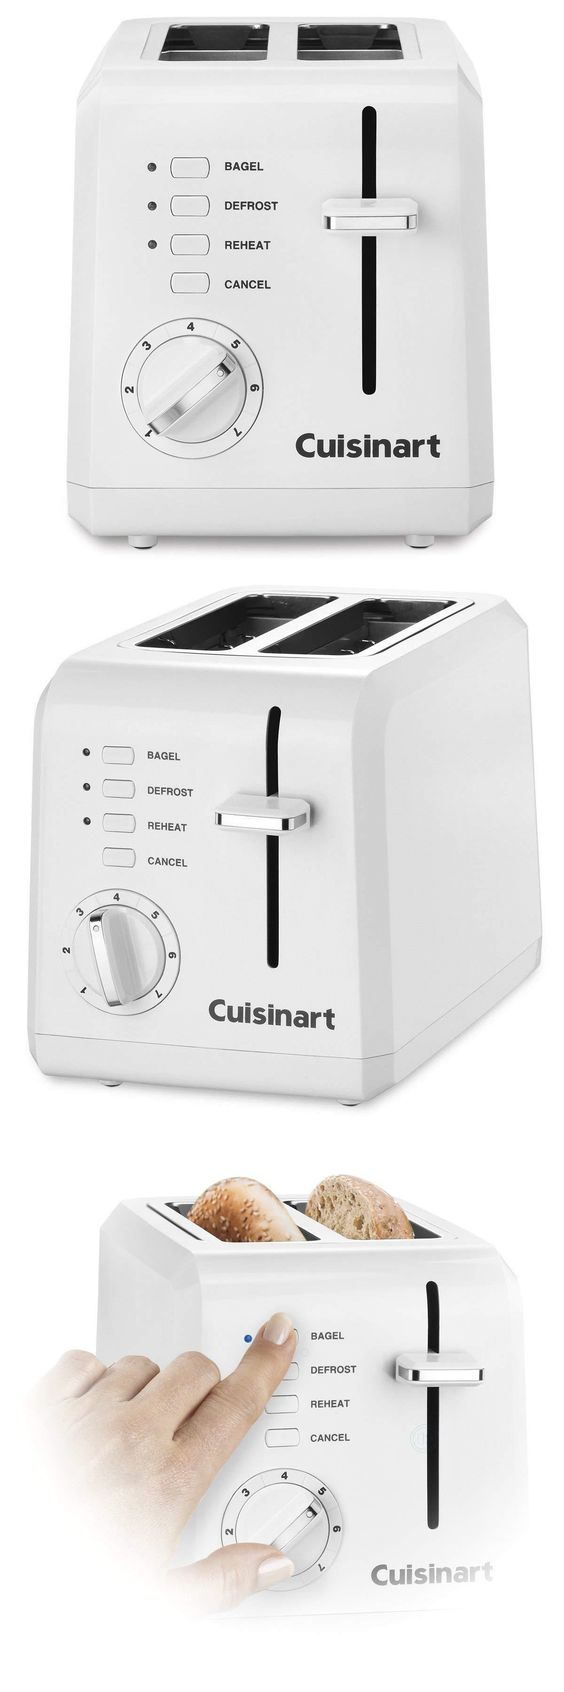 Toasters 77285 100 Genuine Cuisinart Cpt 122 2 Slice Compact Plastic Toaster White New Buy It Now Only 22 39 On Ebay To Toaster Cuisinart Ebay